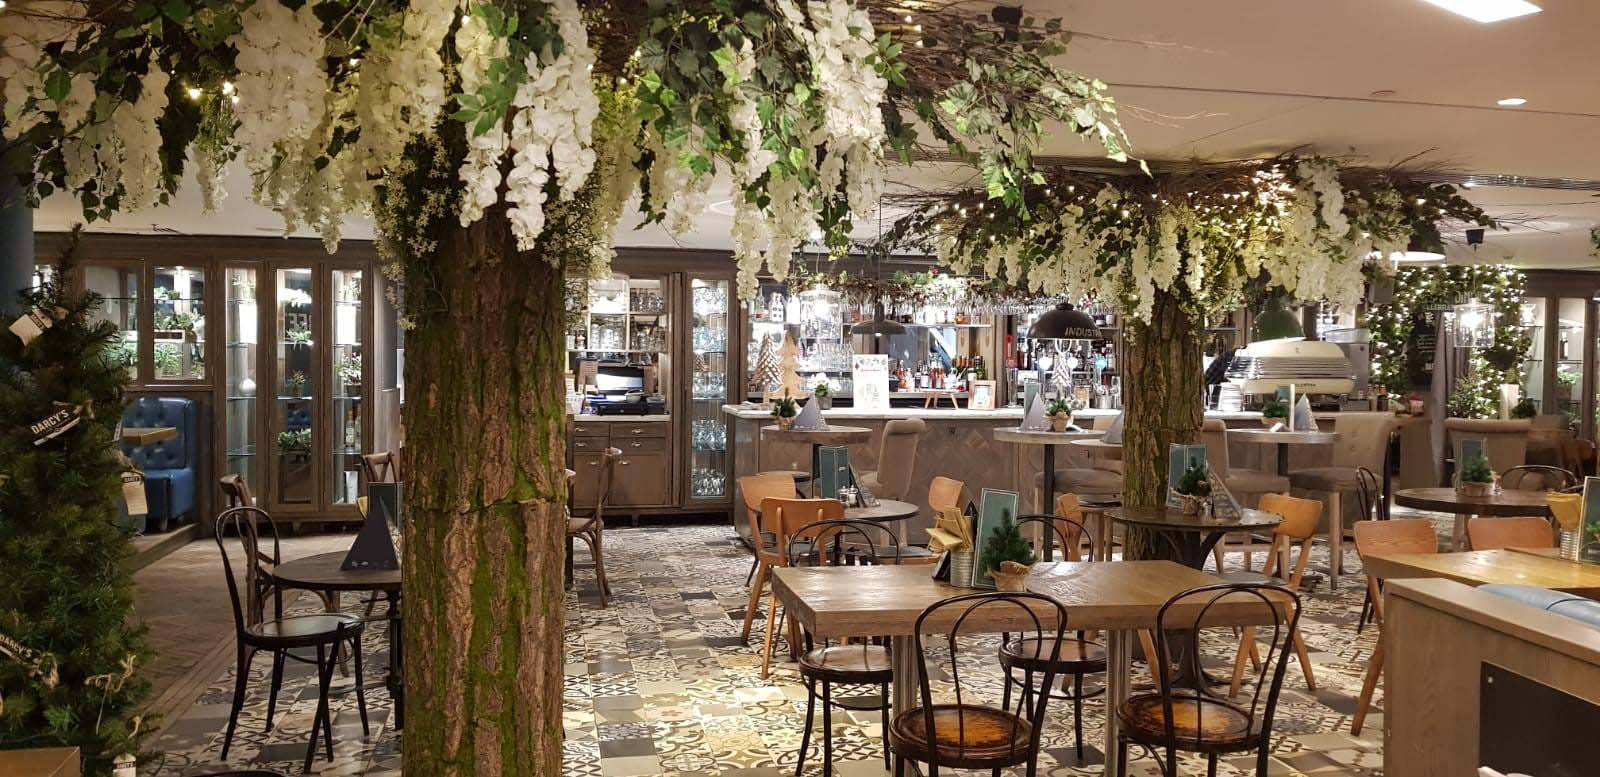 D'arcys bistro in Princess Square, Glasgow with twilight forest of bespoke artificial trees, lush greenery and thousands of twinkling fairy lights